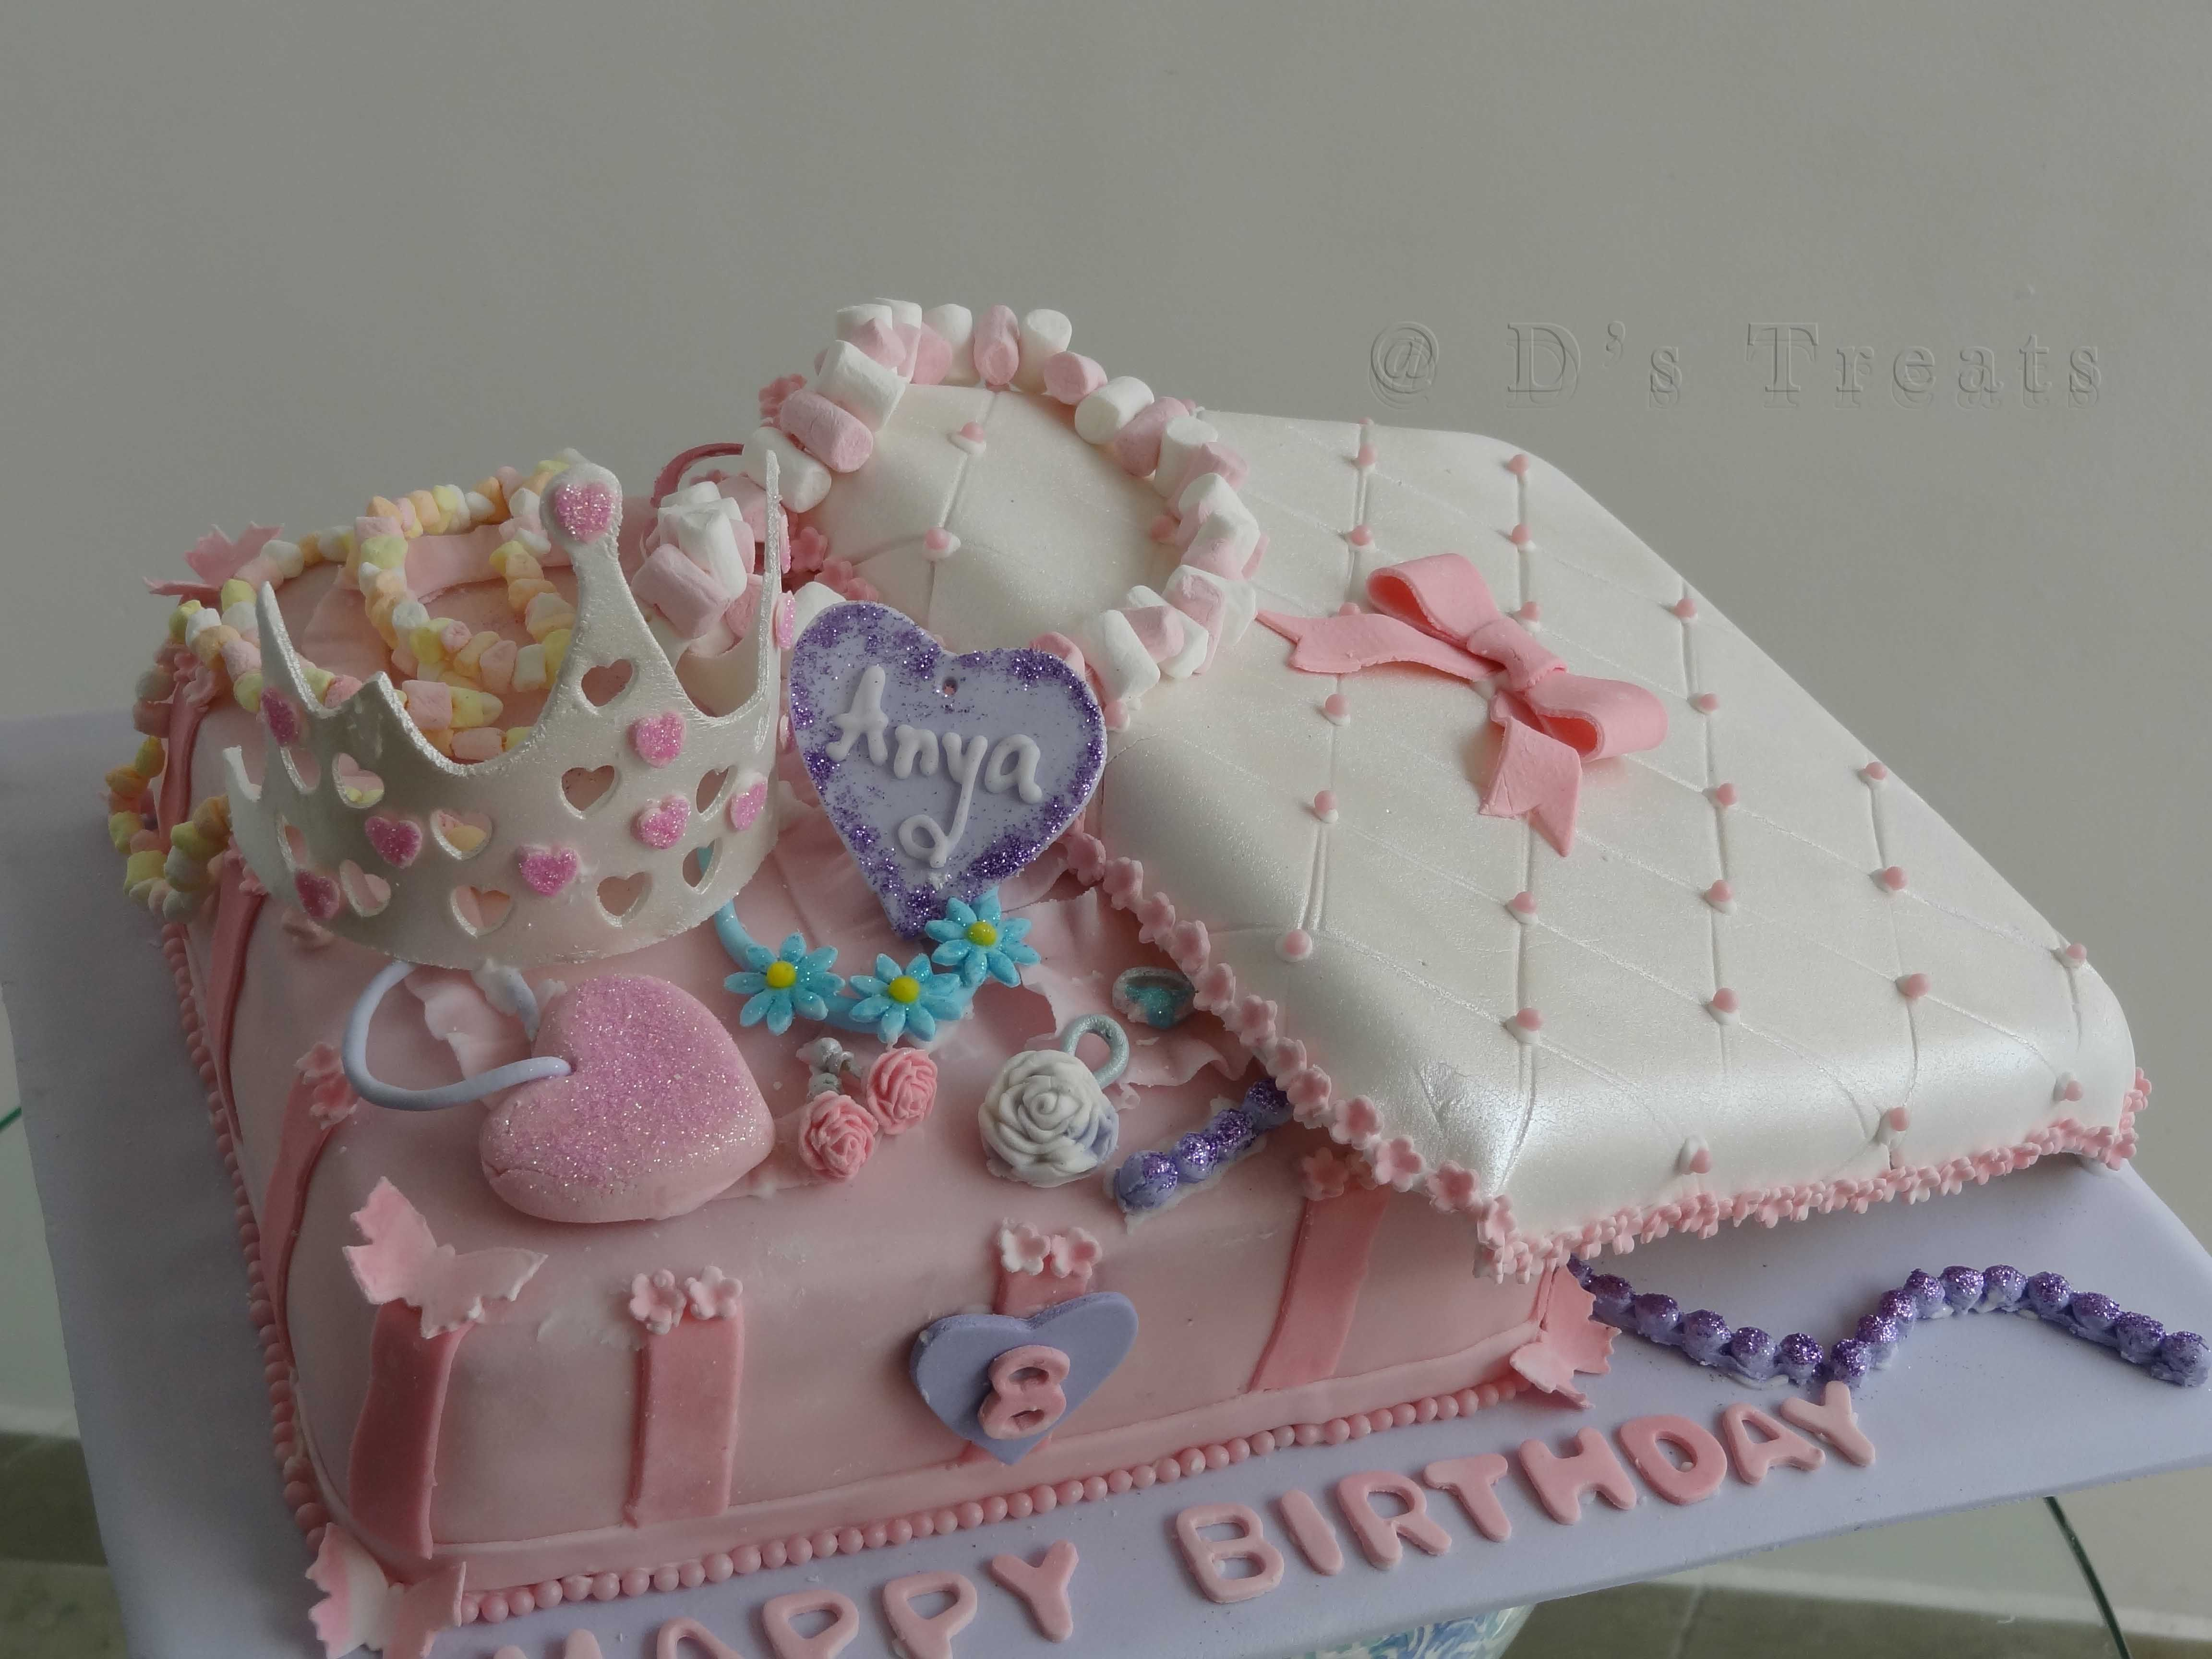 Surprising Jewellery Box Birthday Cake For A Jewellery Making Theme Party Personalised Birthday Cards Sponlily Jamesorg